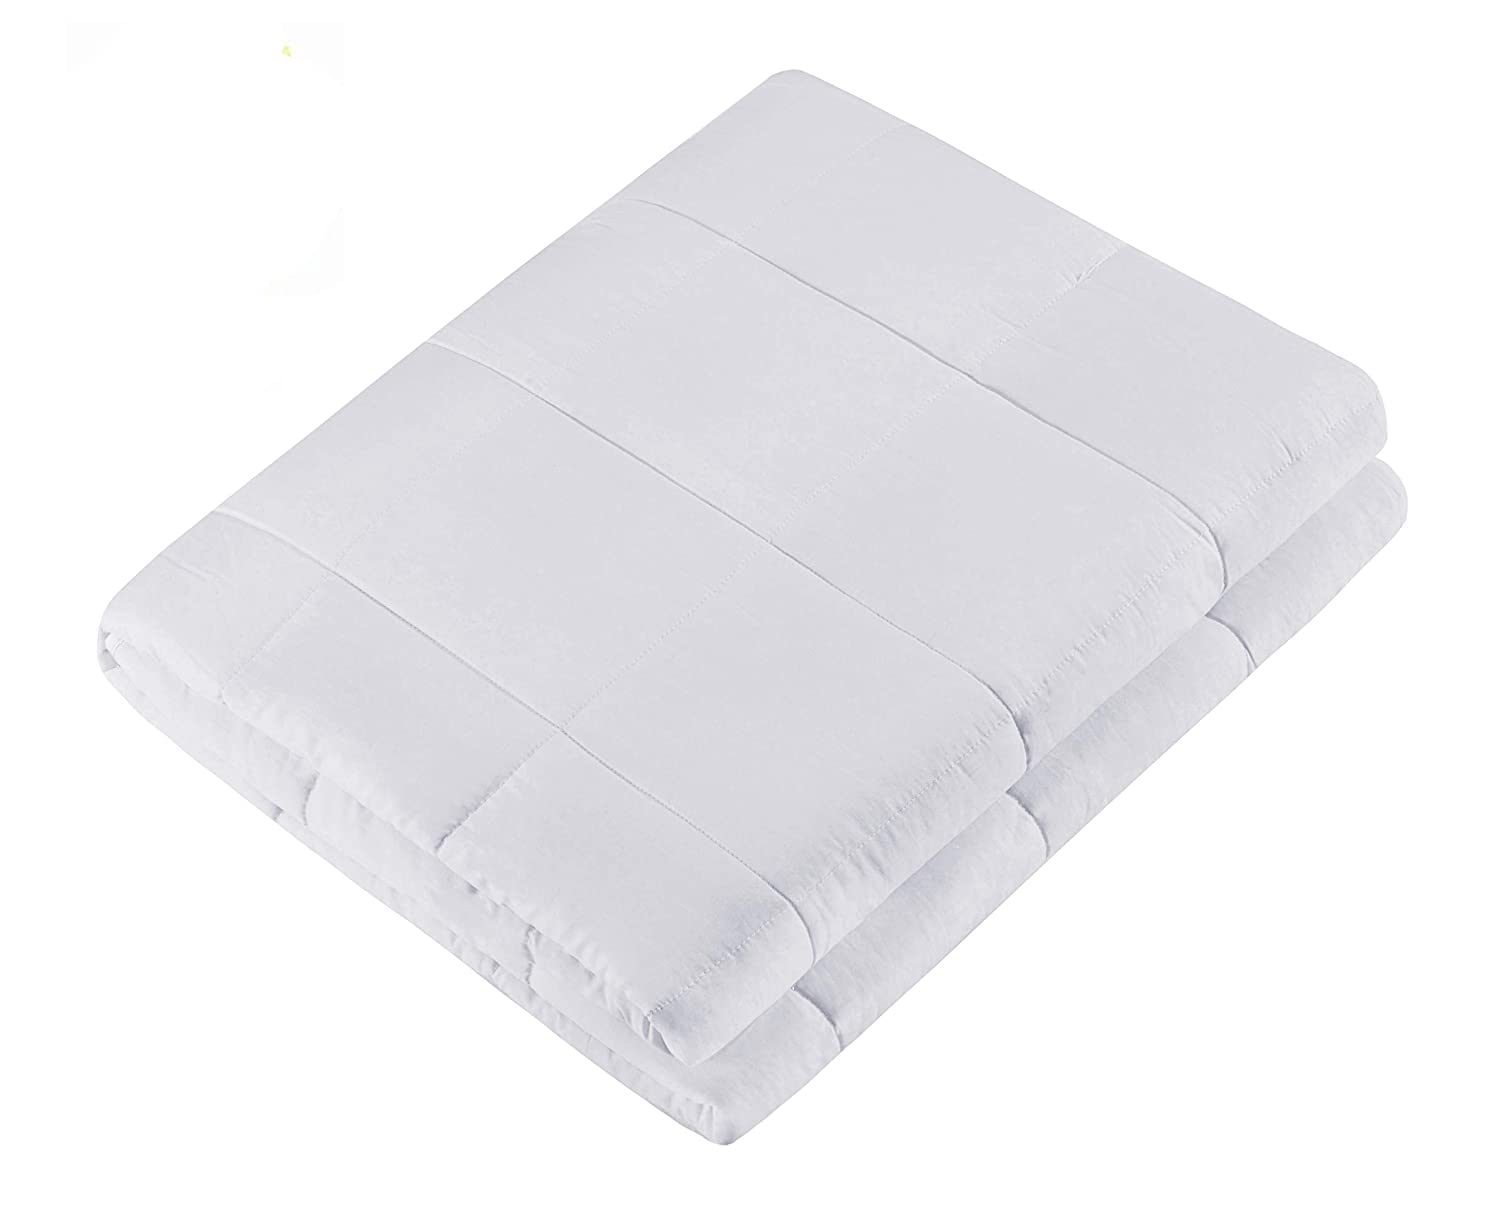 Removable Duvet Cover for Weighted Blanket Washable Cover Natural Cotton - Comfortable, Breathable, Soft and Extremely Durable Queen Size 60''x80'' Anyway